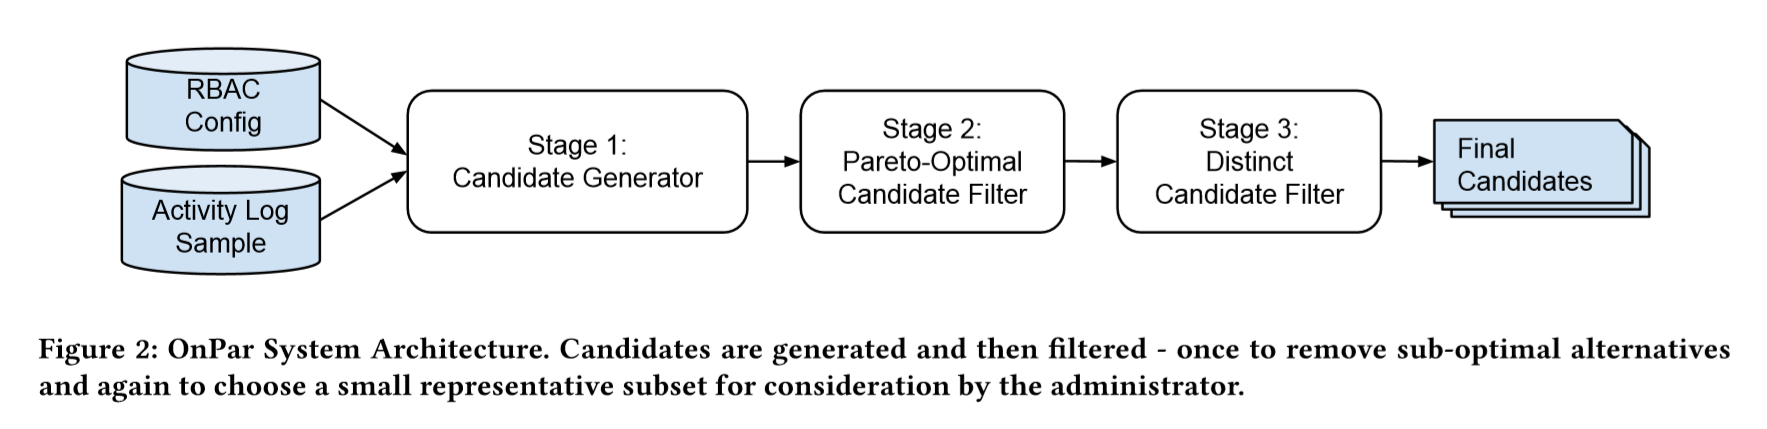 Figure 2: OnPar System Architecture. Candidates are generated and then filtered - once to remove sub-optimal alternatives and again to choose a small representative subset for consideration by the administrator.